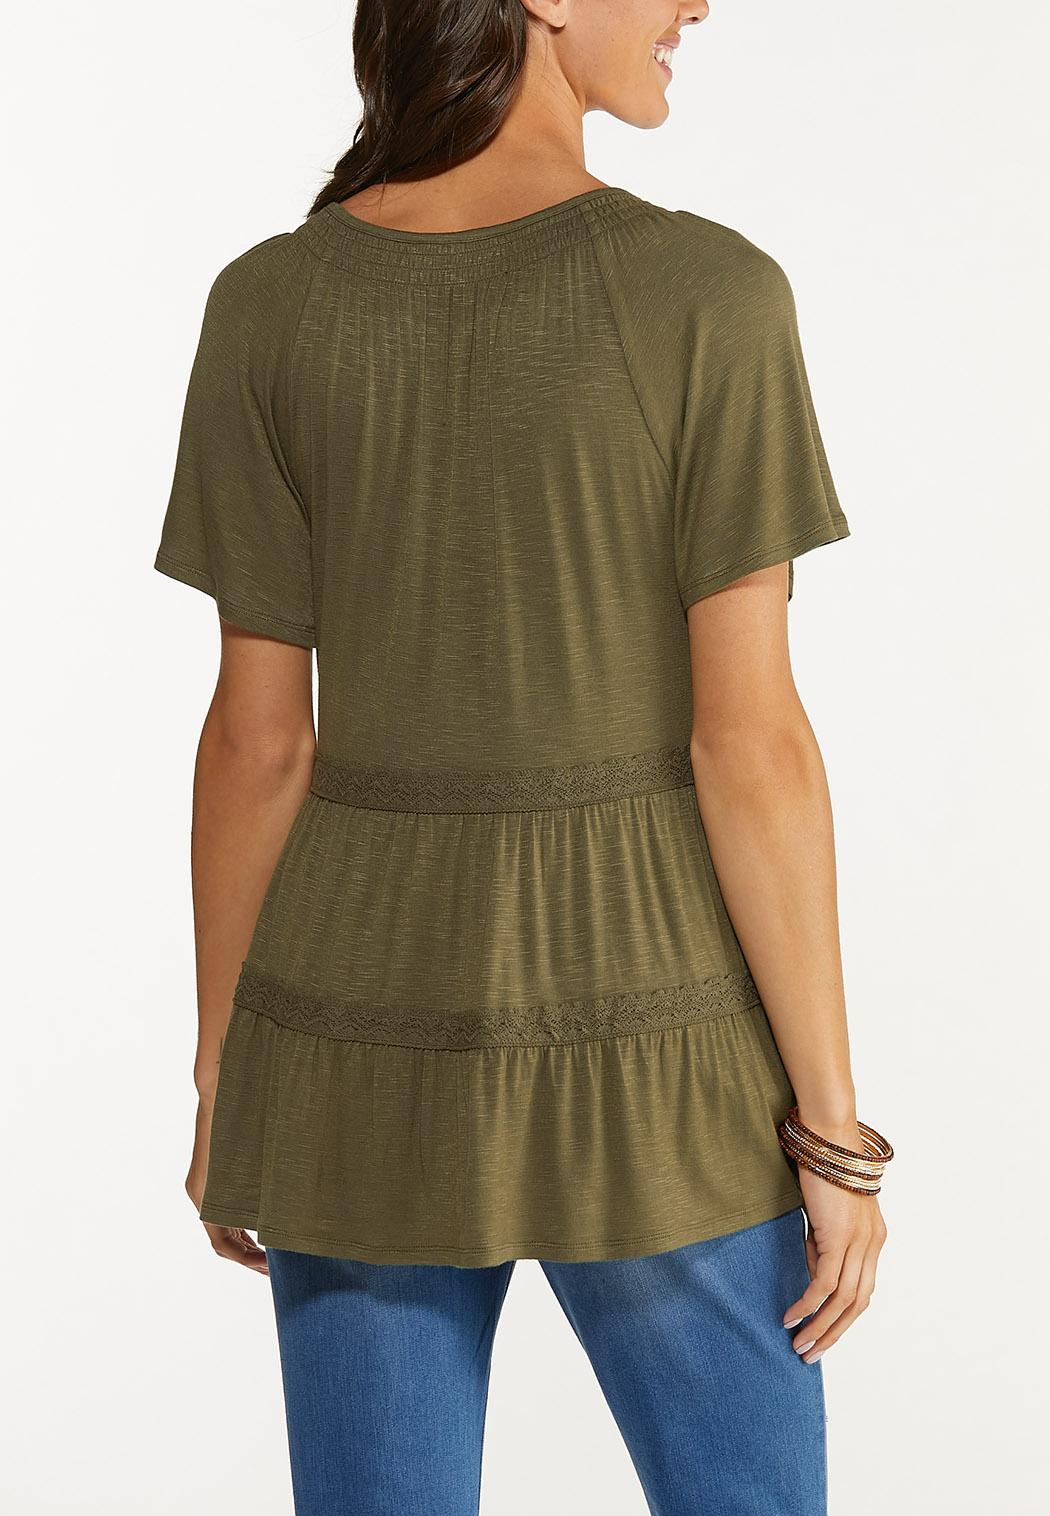 Olive Tiered Top (Item #44648635)